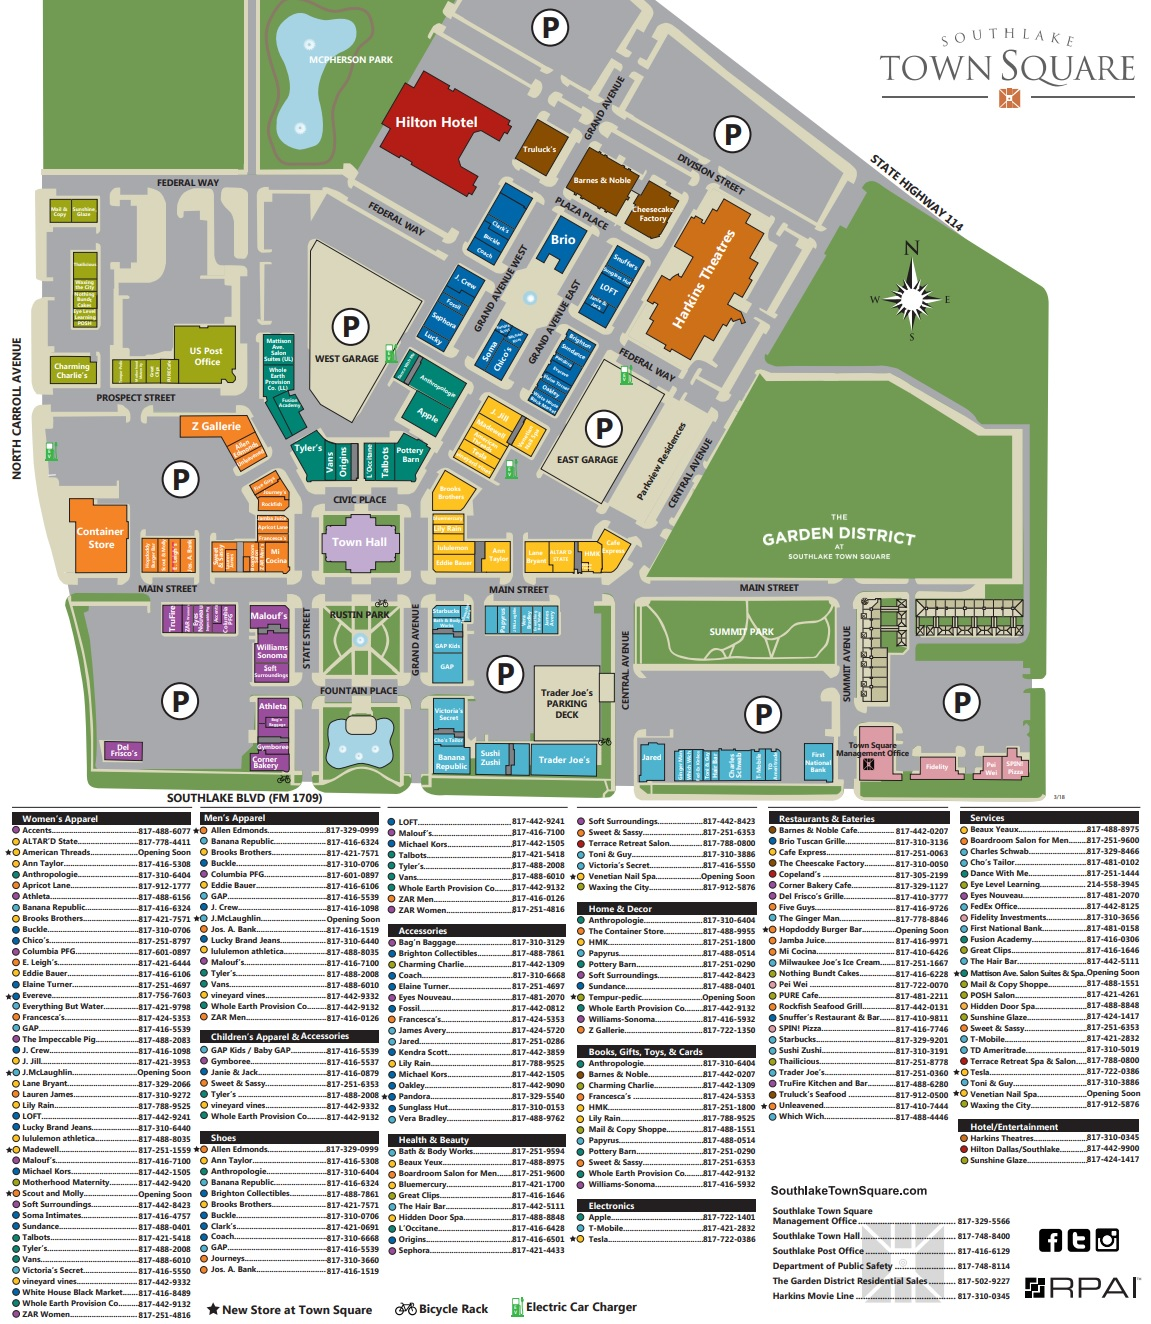 Southlake Mall Map Southlake Town Square (126 stores)   shopping in Southlake, Texas  Southlake Mall Map